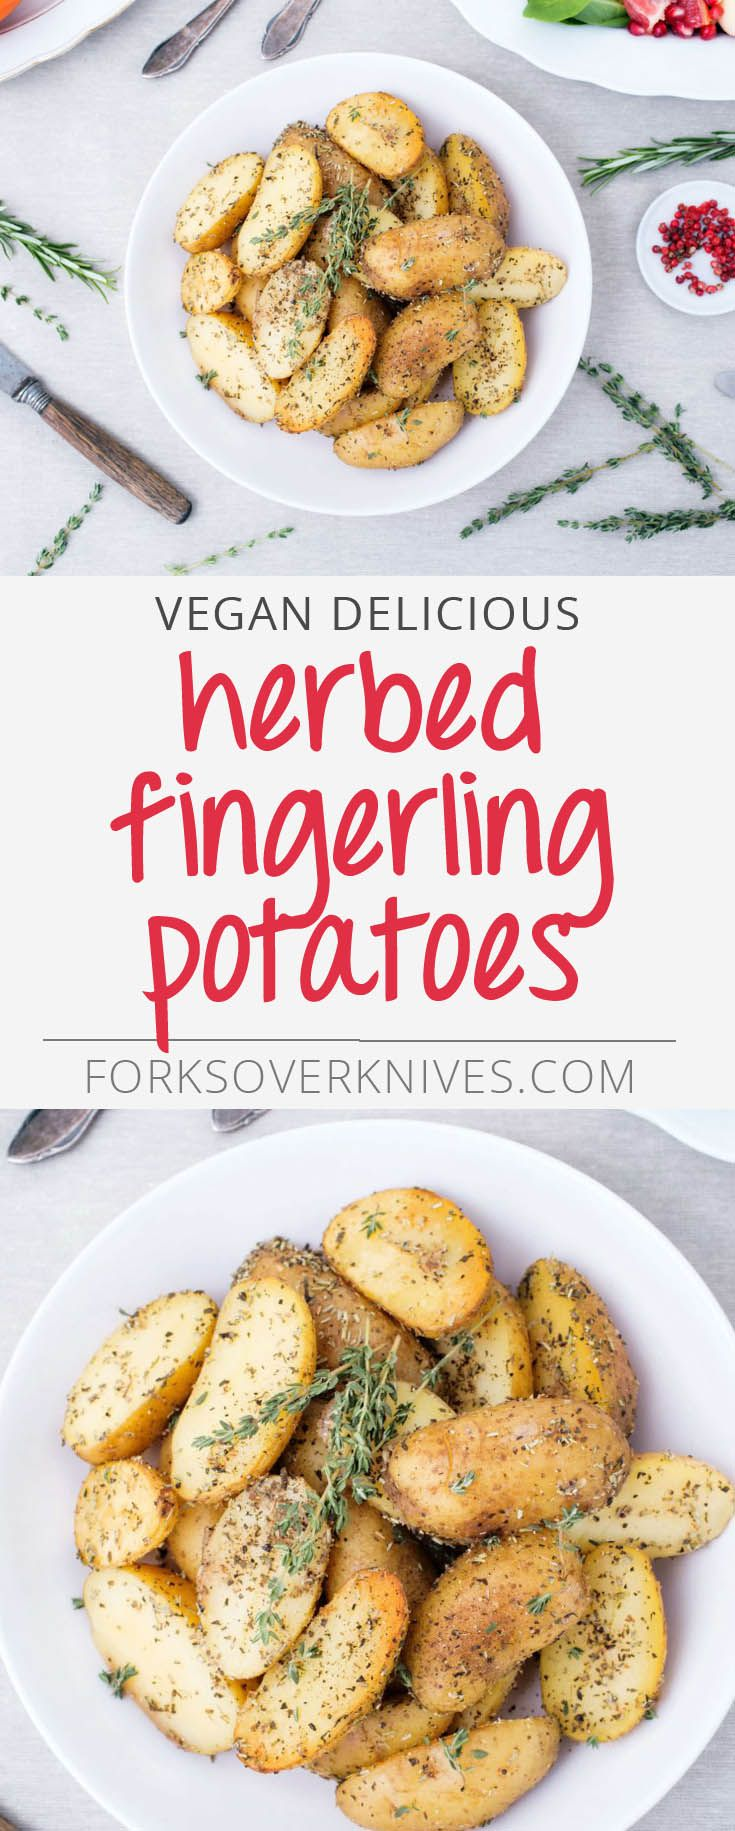 Herbed Fingerling Potatoes - Plant-Based Vegan Recipe